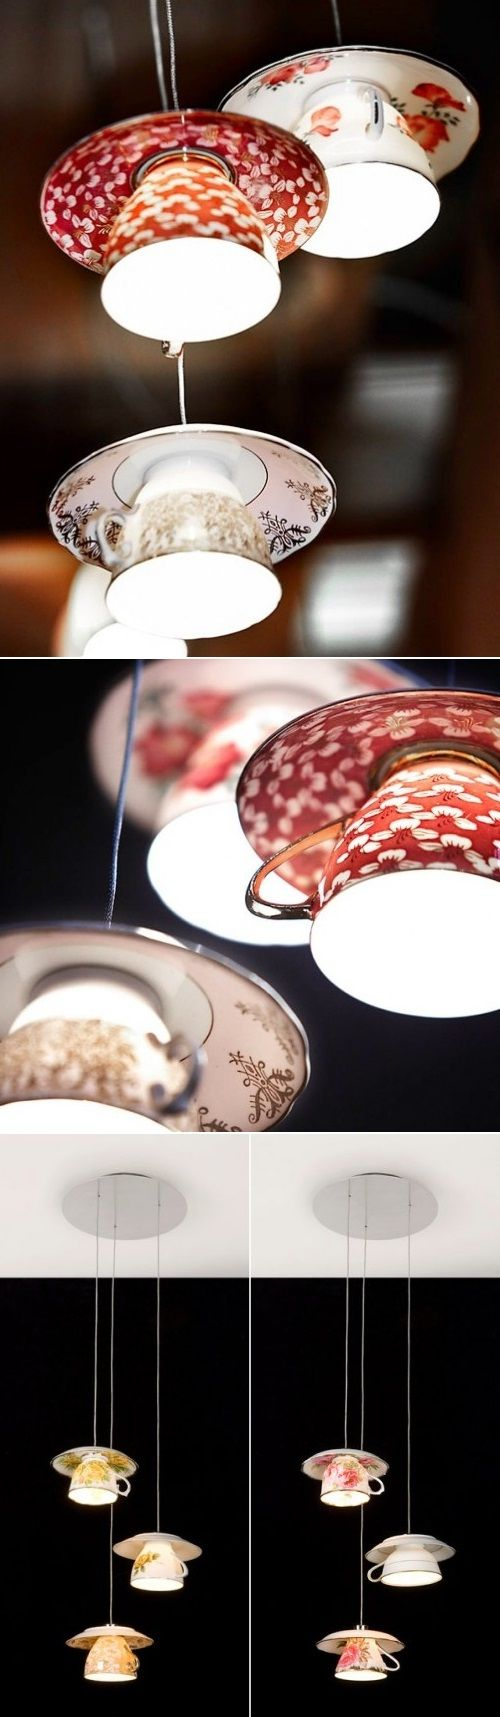 DIY Cozy Lamp ideas....such a cute idea. Not finding the instructions anywhere, though.